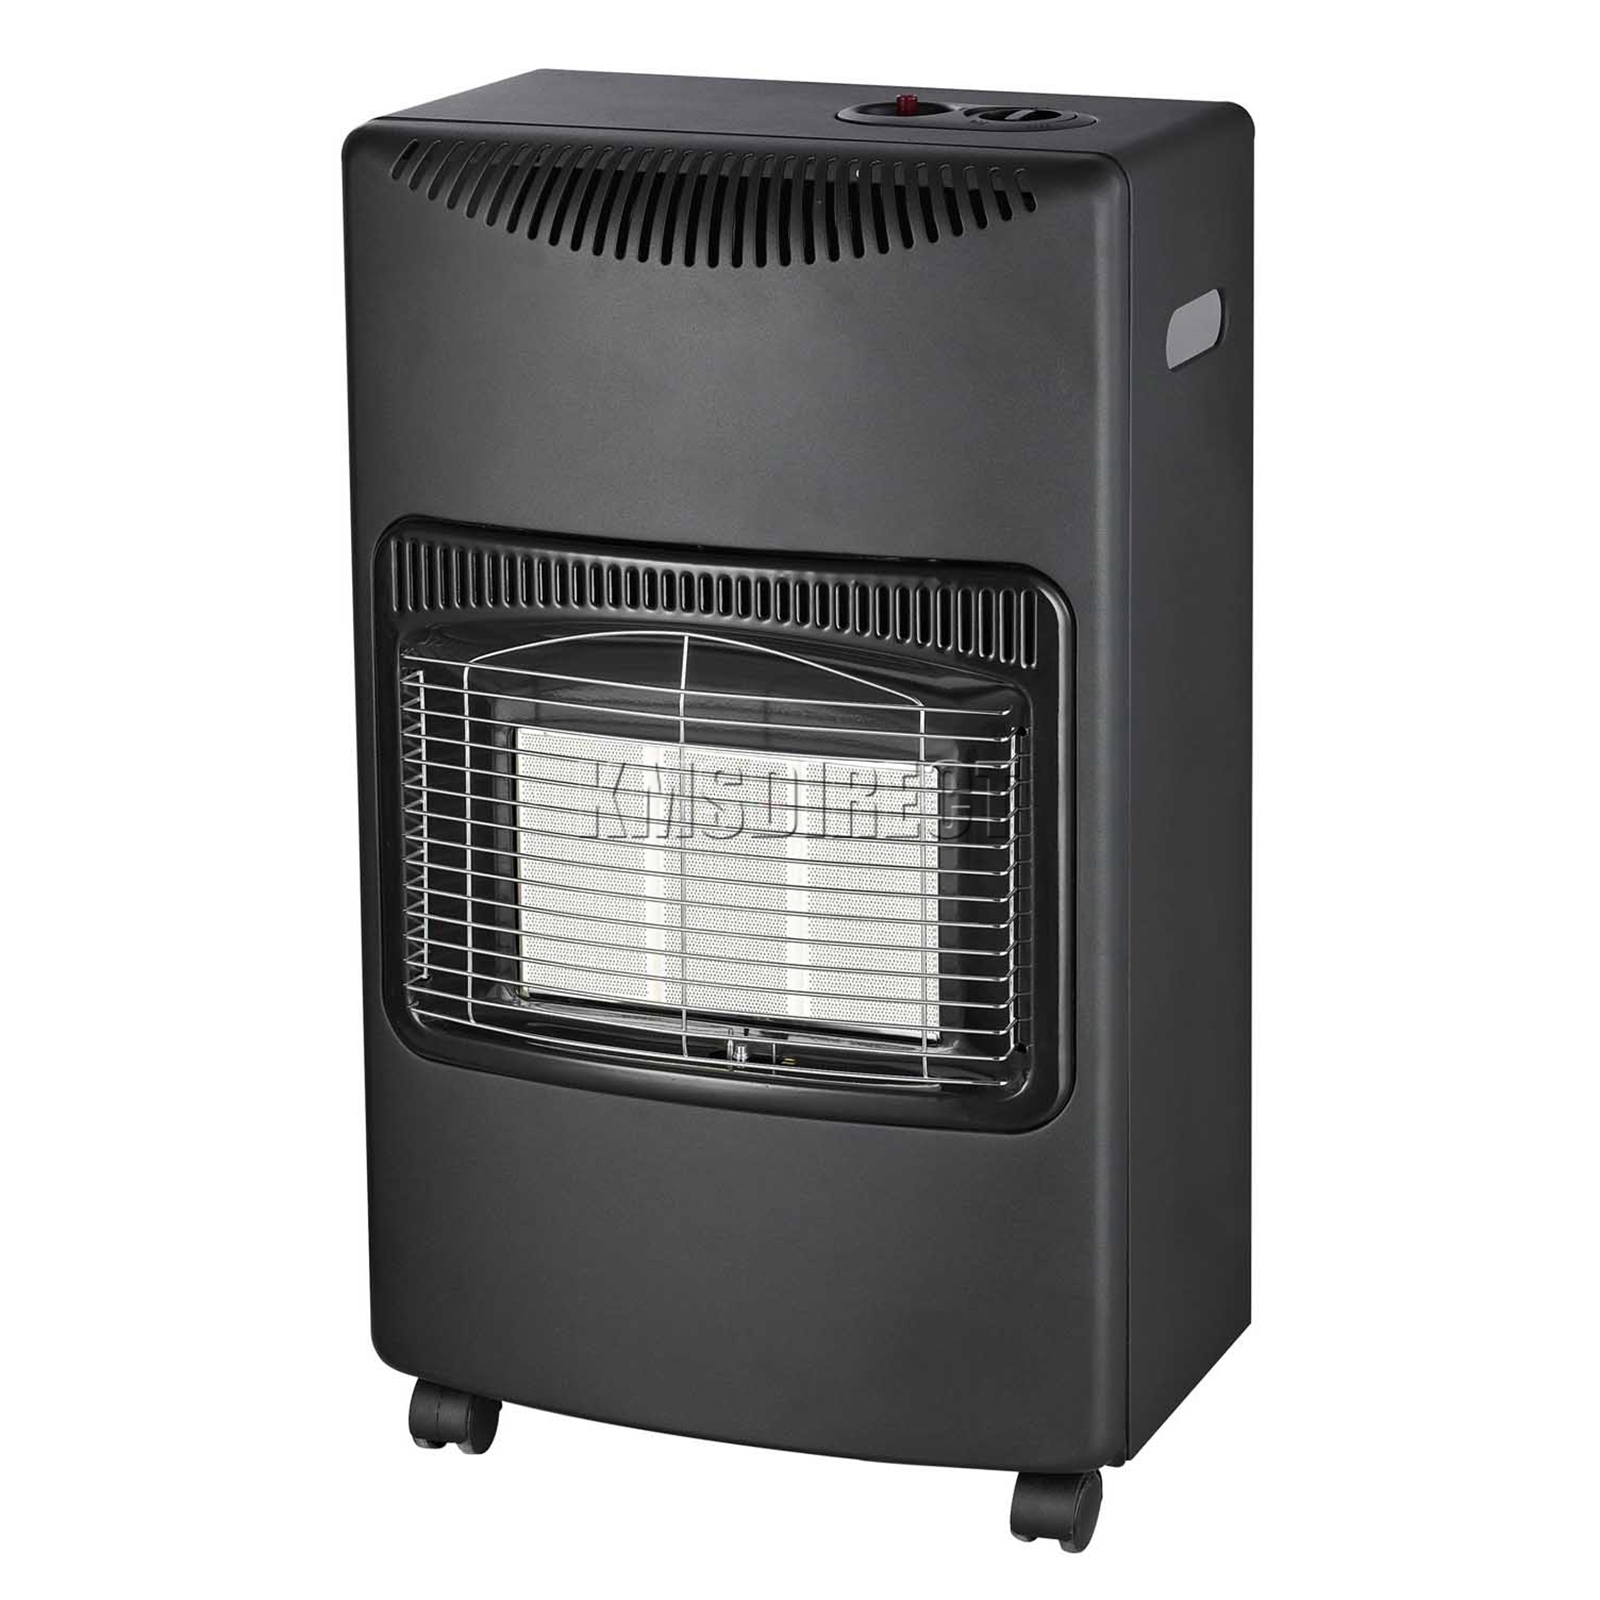 4 2kw portable home butane fire calor gas cabinet heater with regulator hose new 5055418314602. Black Bedroom Furniture Sets. Home Design Ideas